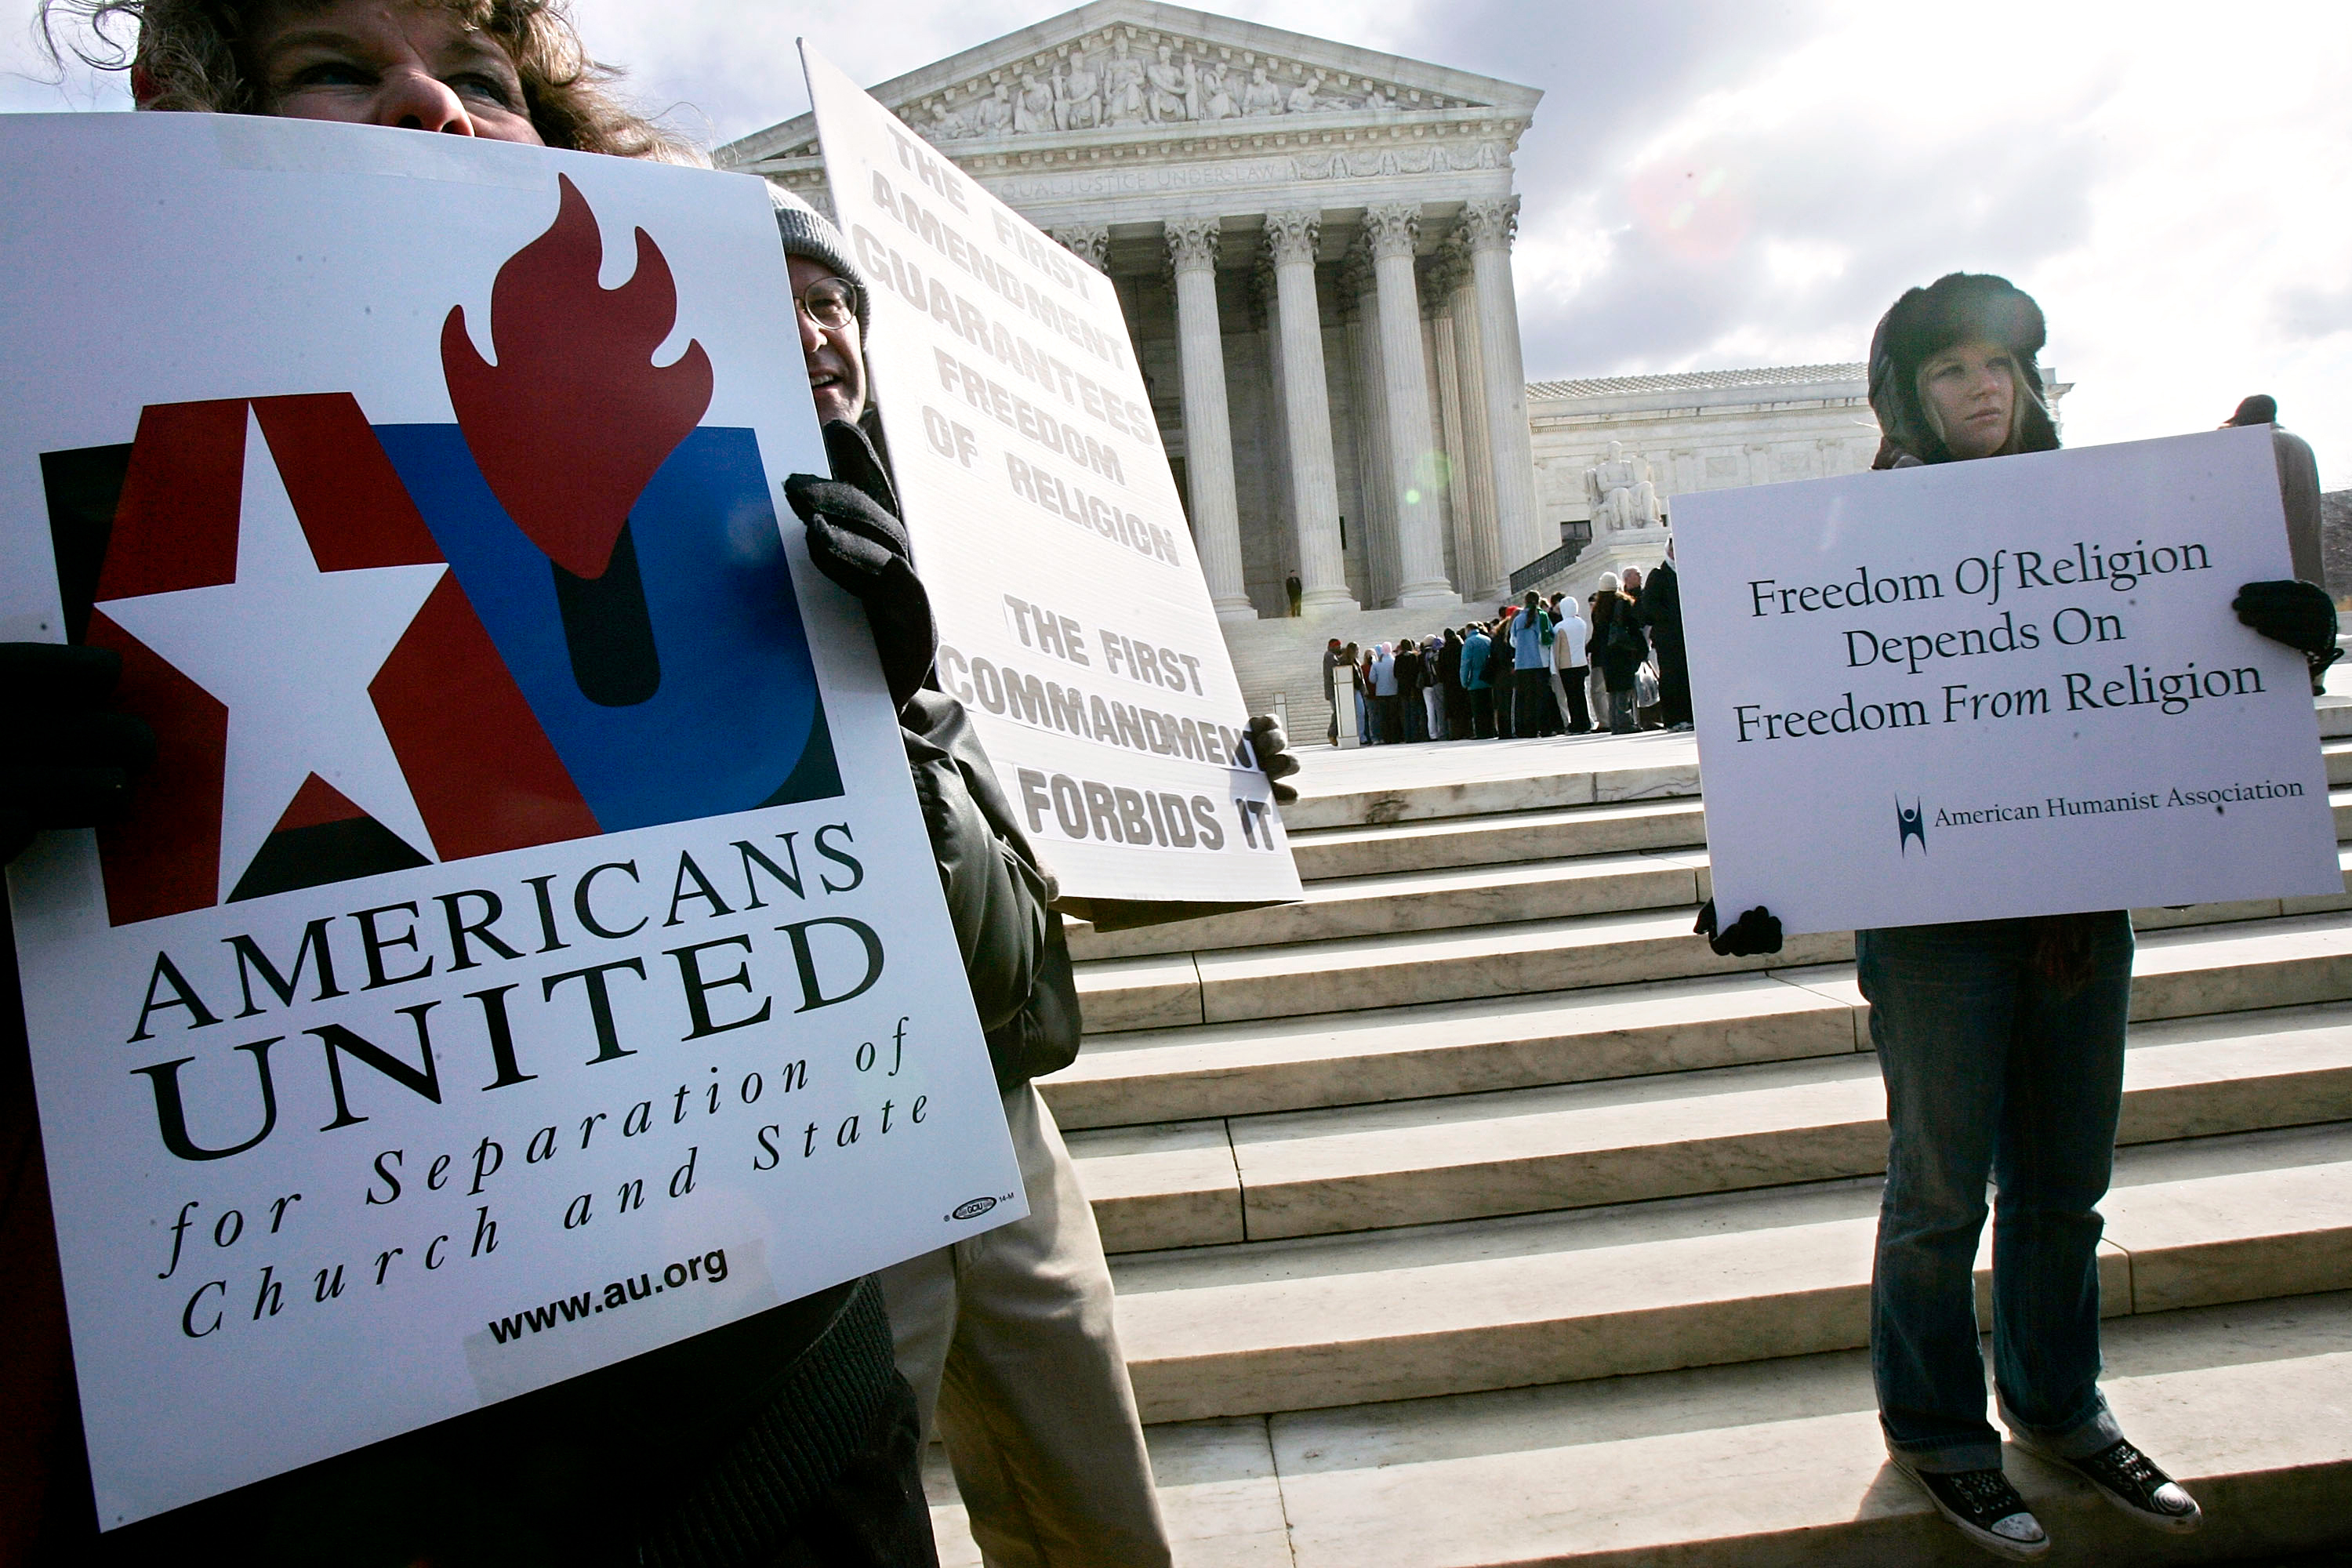 Activists hold posters during a March 2005 rally in front of the U.S. Supreme Court to support separation of church and state. The court heard two cases regarding whether Ten Commandments monuments should be displayed on government properties. Alex Wong/Getty Images